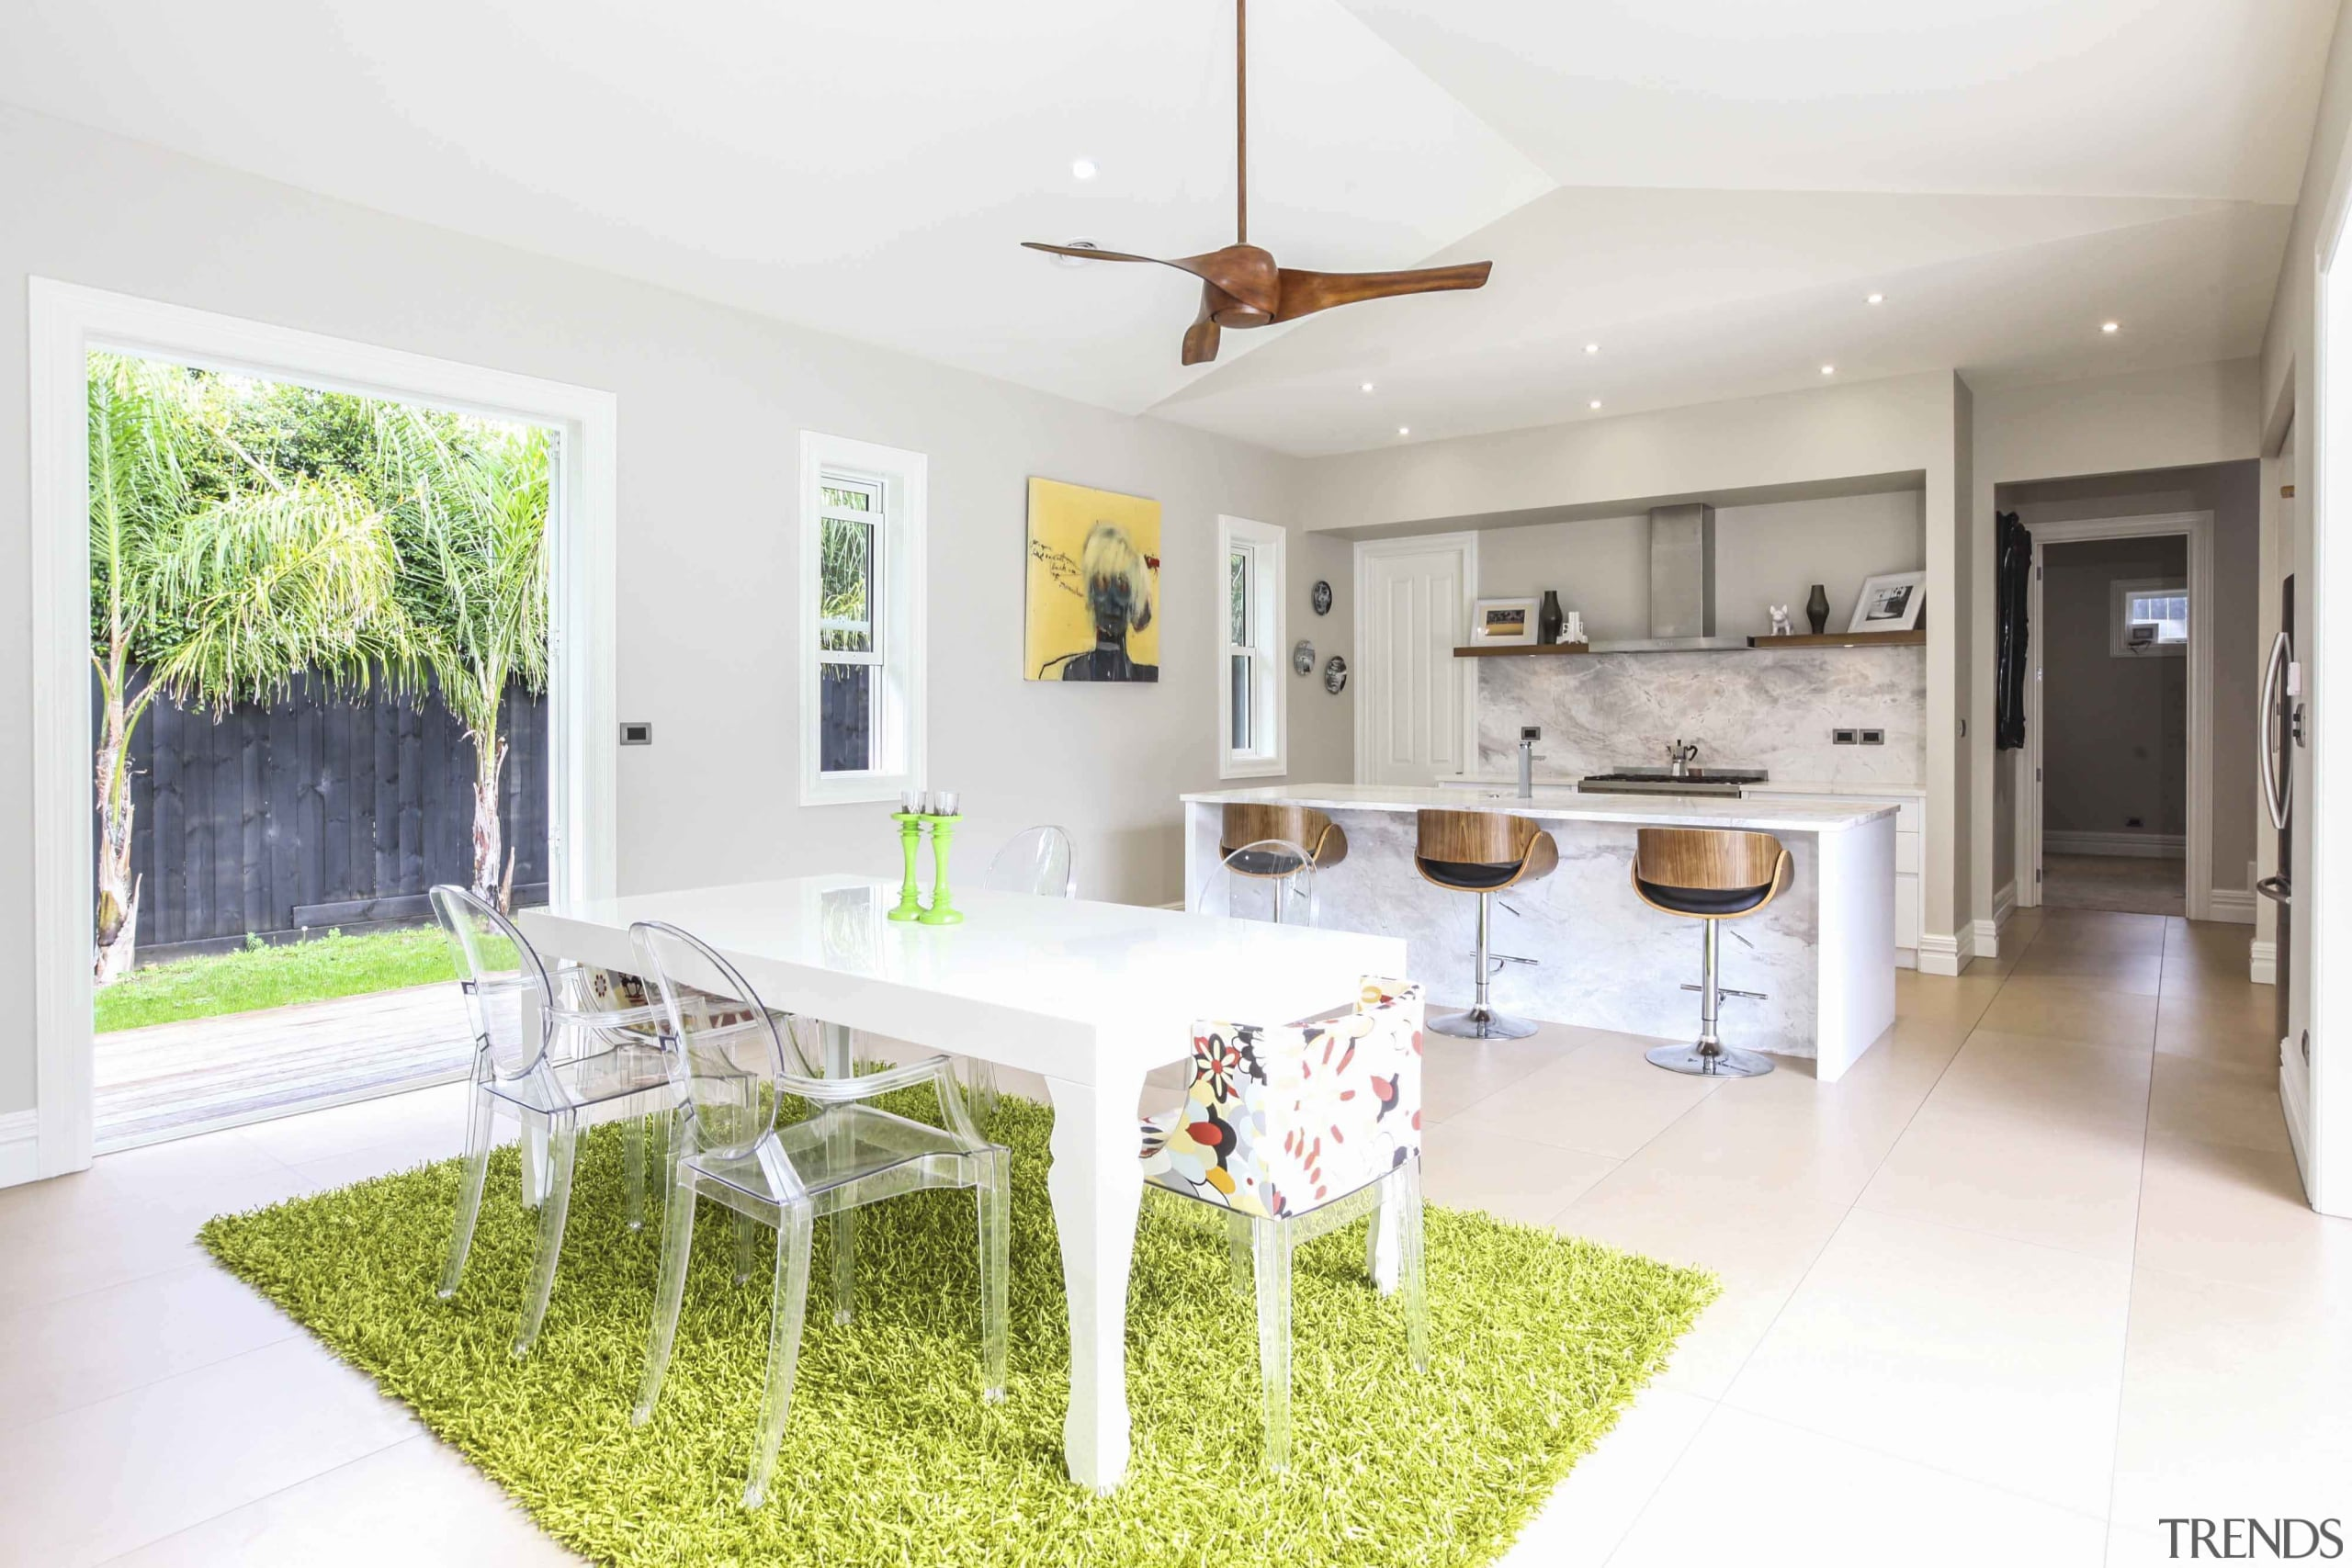 This kitchen features easy access to the outside dining room, estate, home, interior design, kitchen, property, real estate, room, table, white